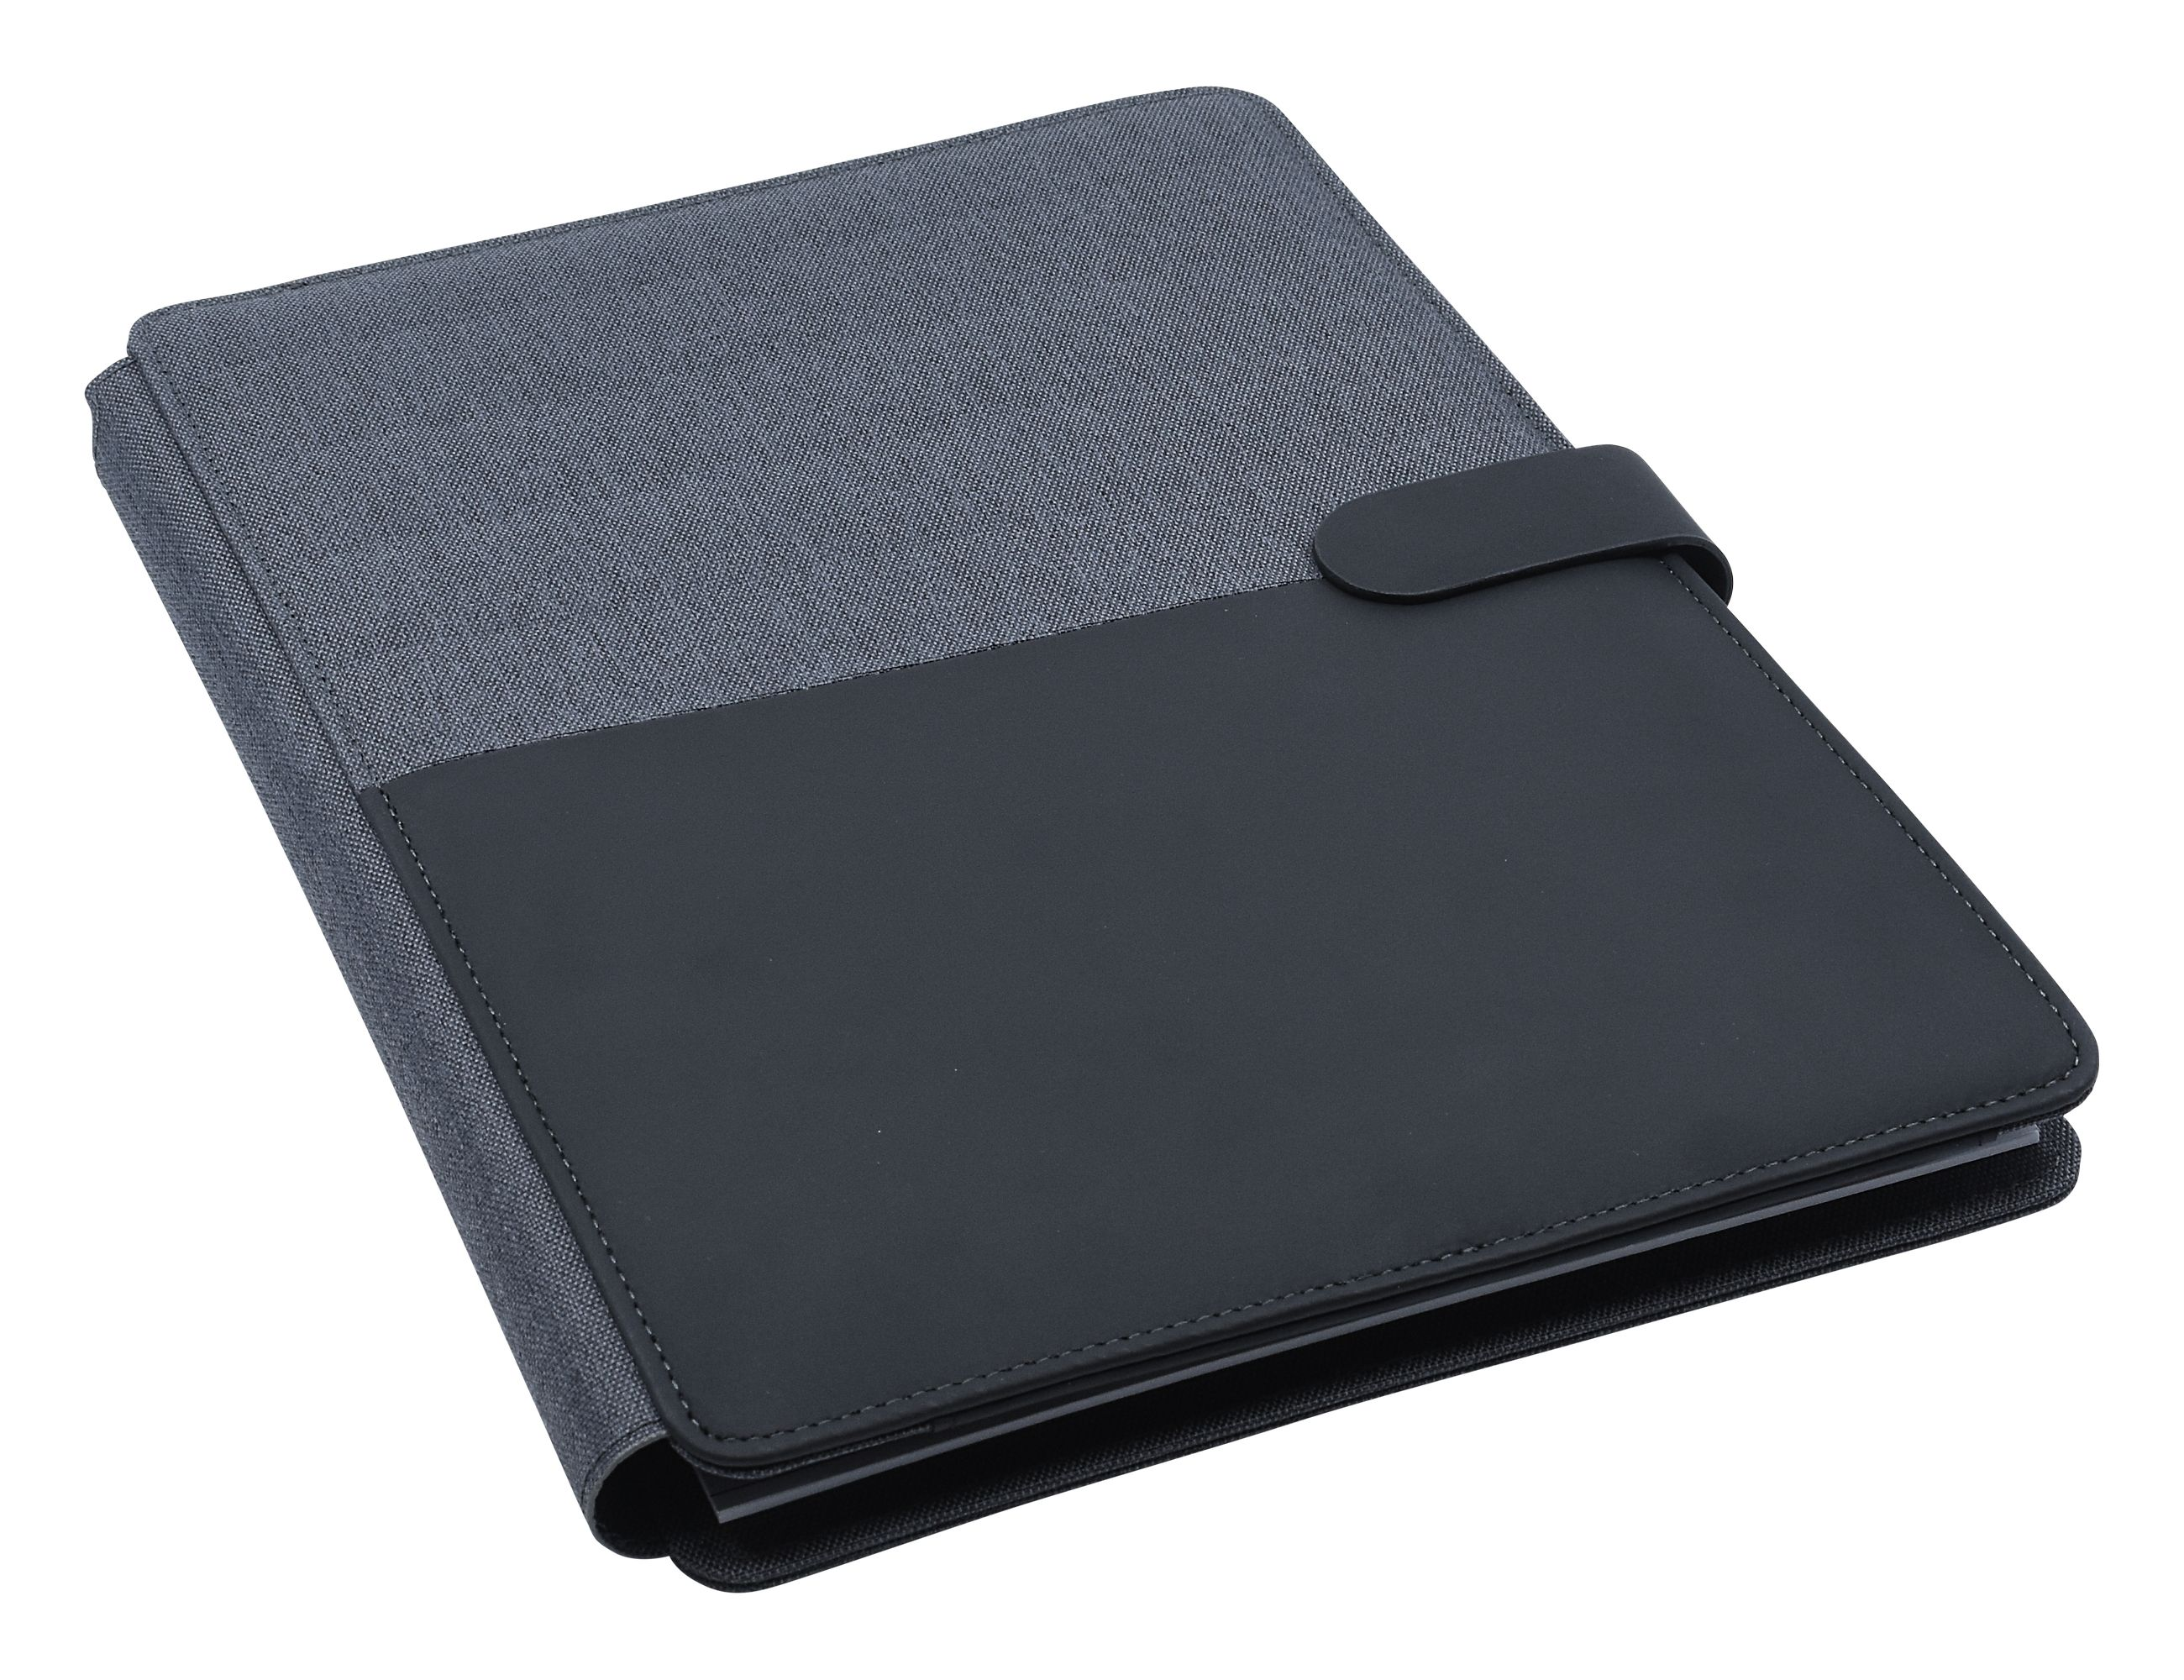 Promotional Product Impact A4 Portfolio, Black/Charcoal